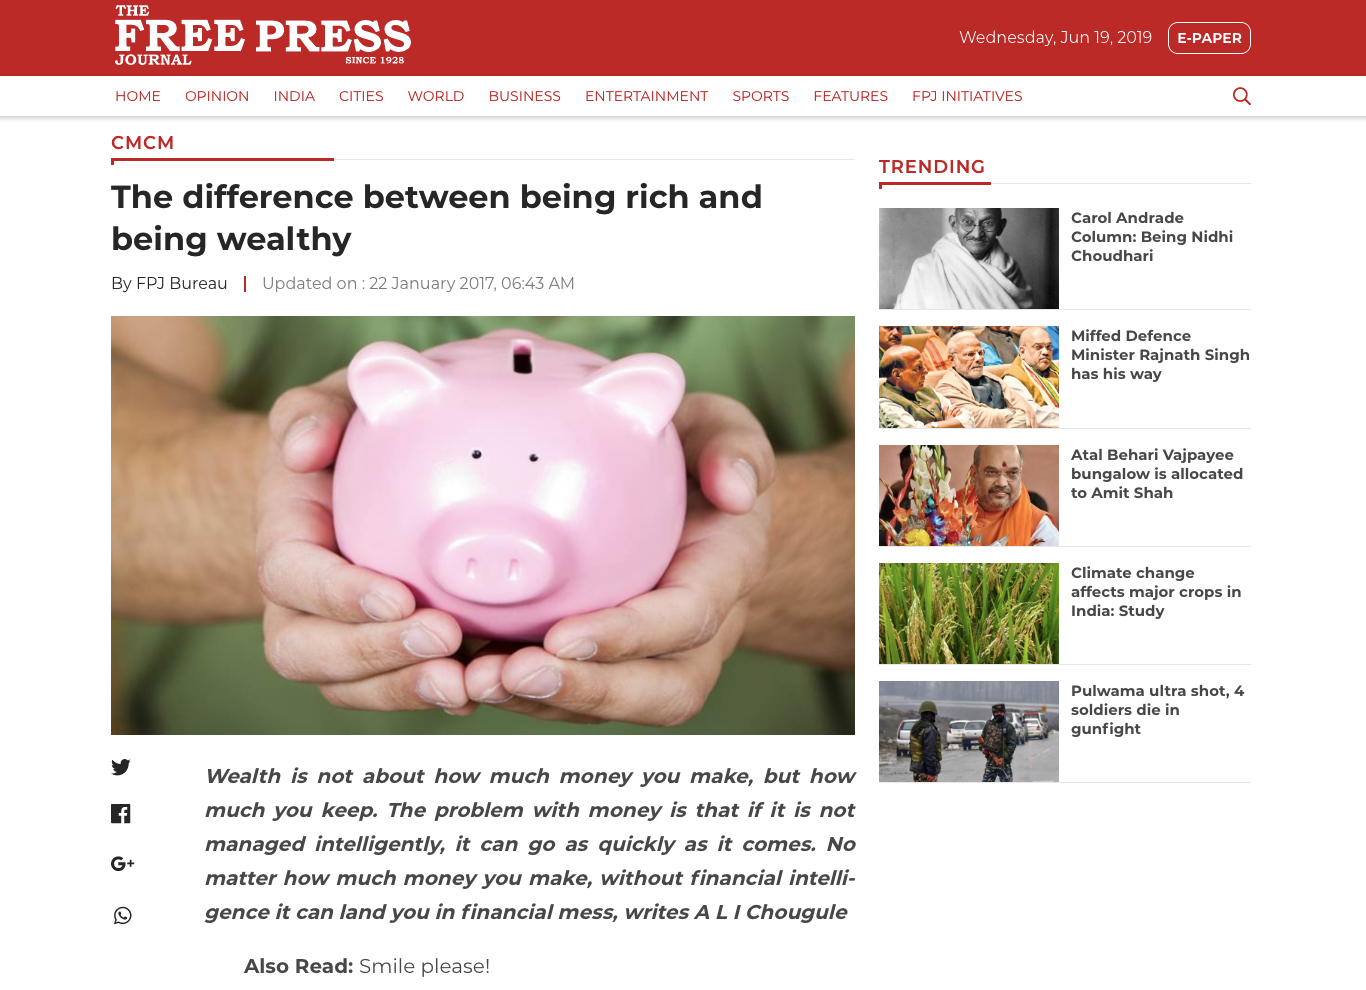 screencapture-freepressjournal-in-cmcm-the-difference-between-being-rich-and-being-wealthy-2019-06-19-11_56_54.png